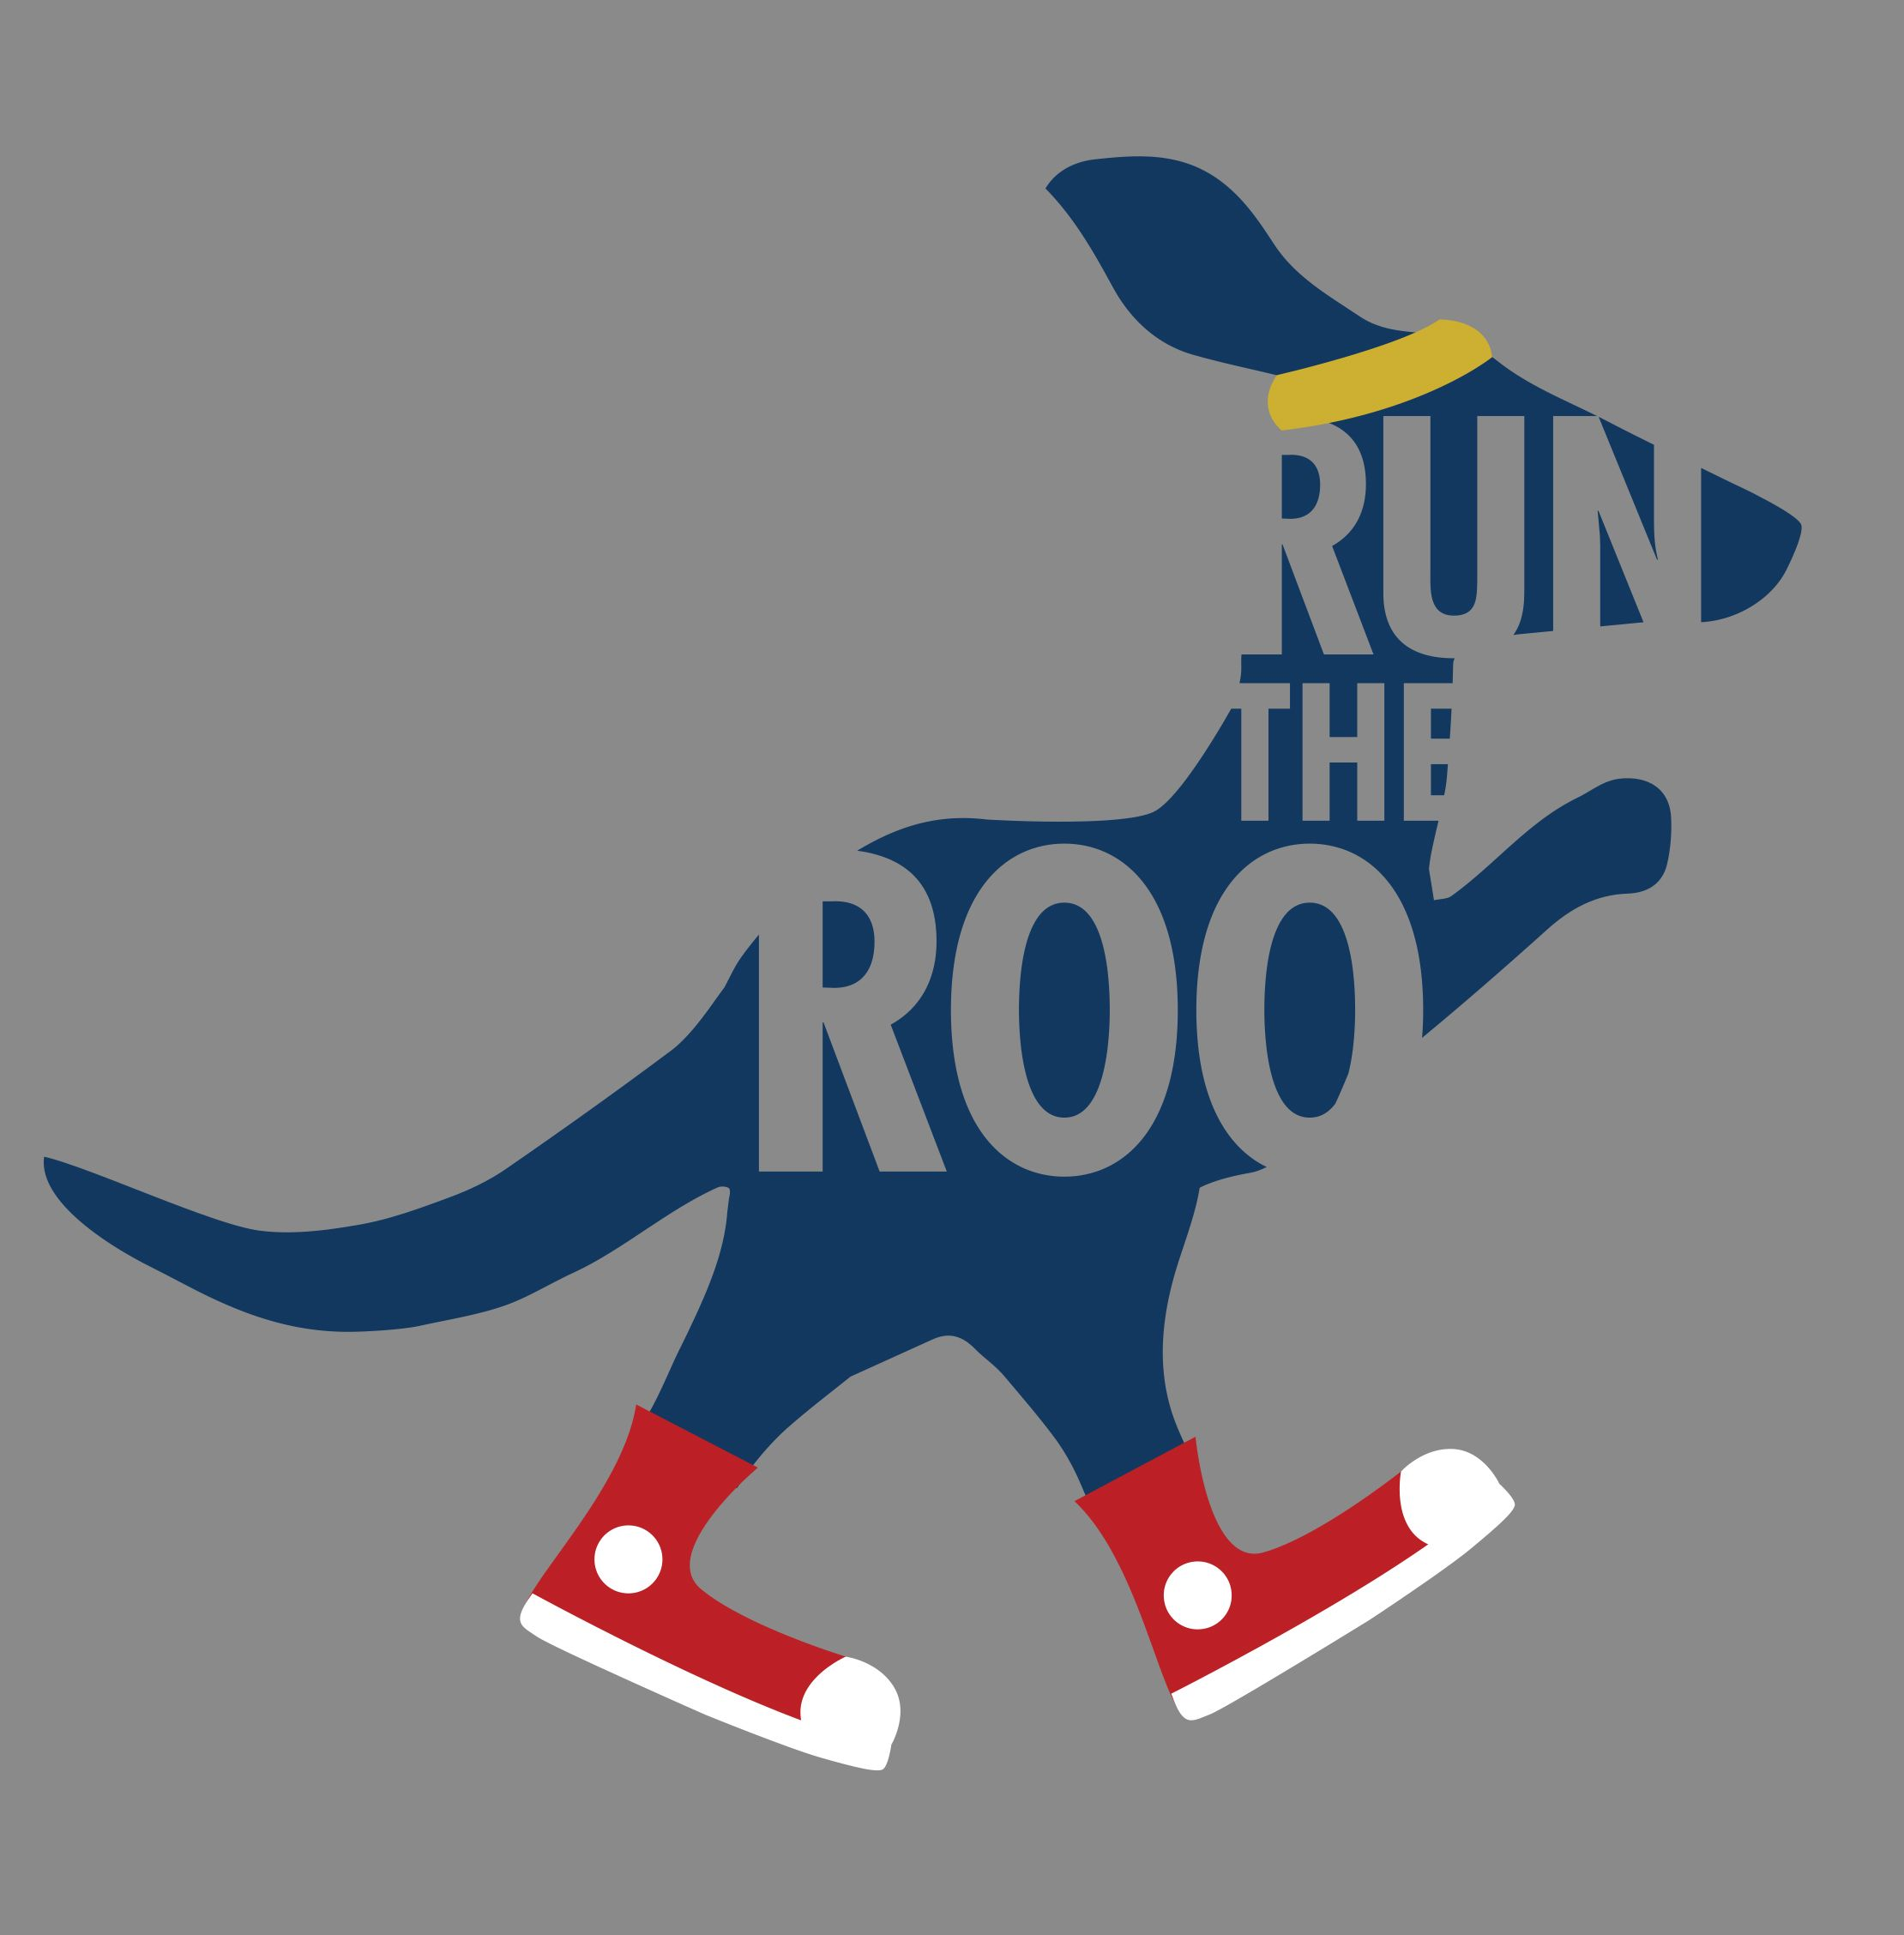 We Run with the Roo